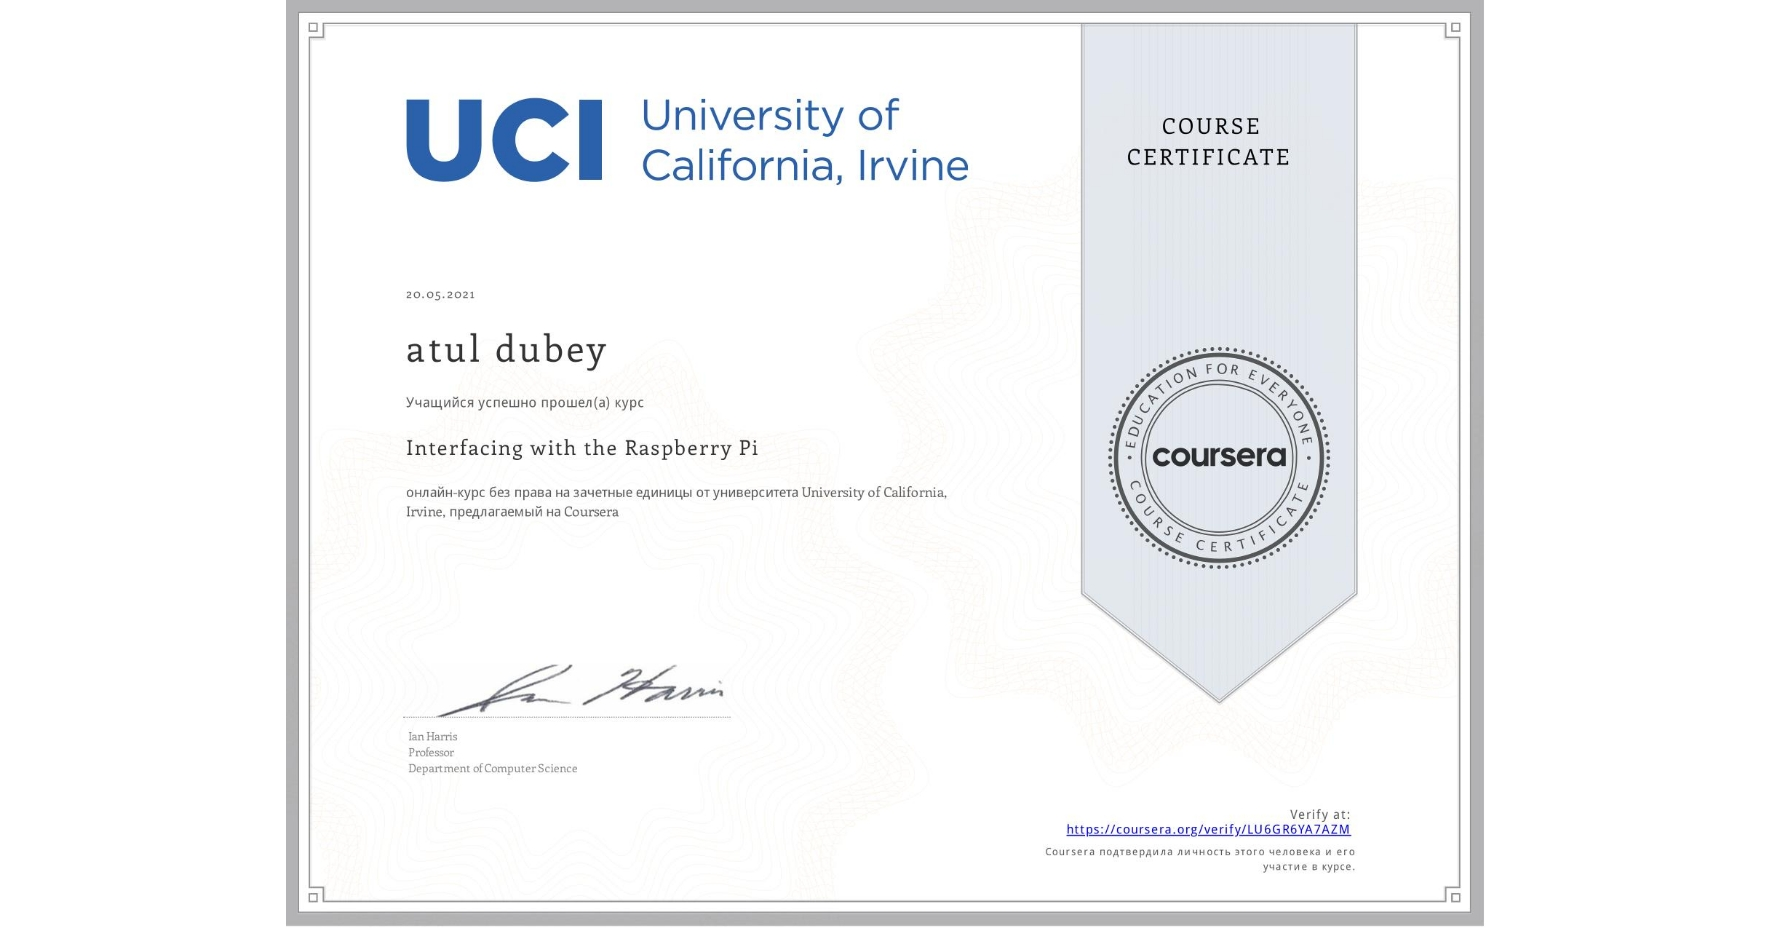 View certificate for atul dubey, Interfacing with the Raspberry Pi, an online non-credit course authorized by University of California, Irvine and offered through Coursera